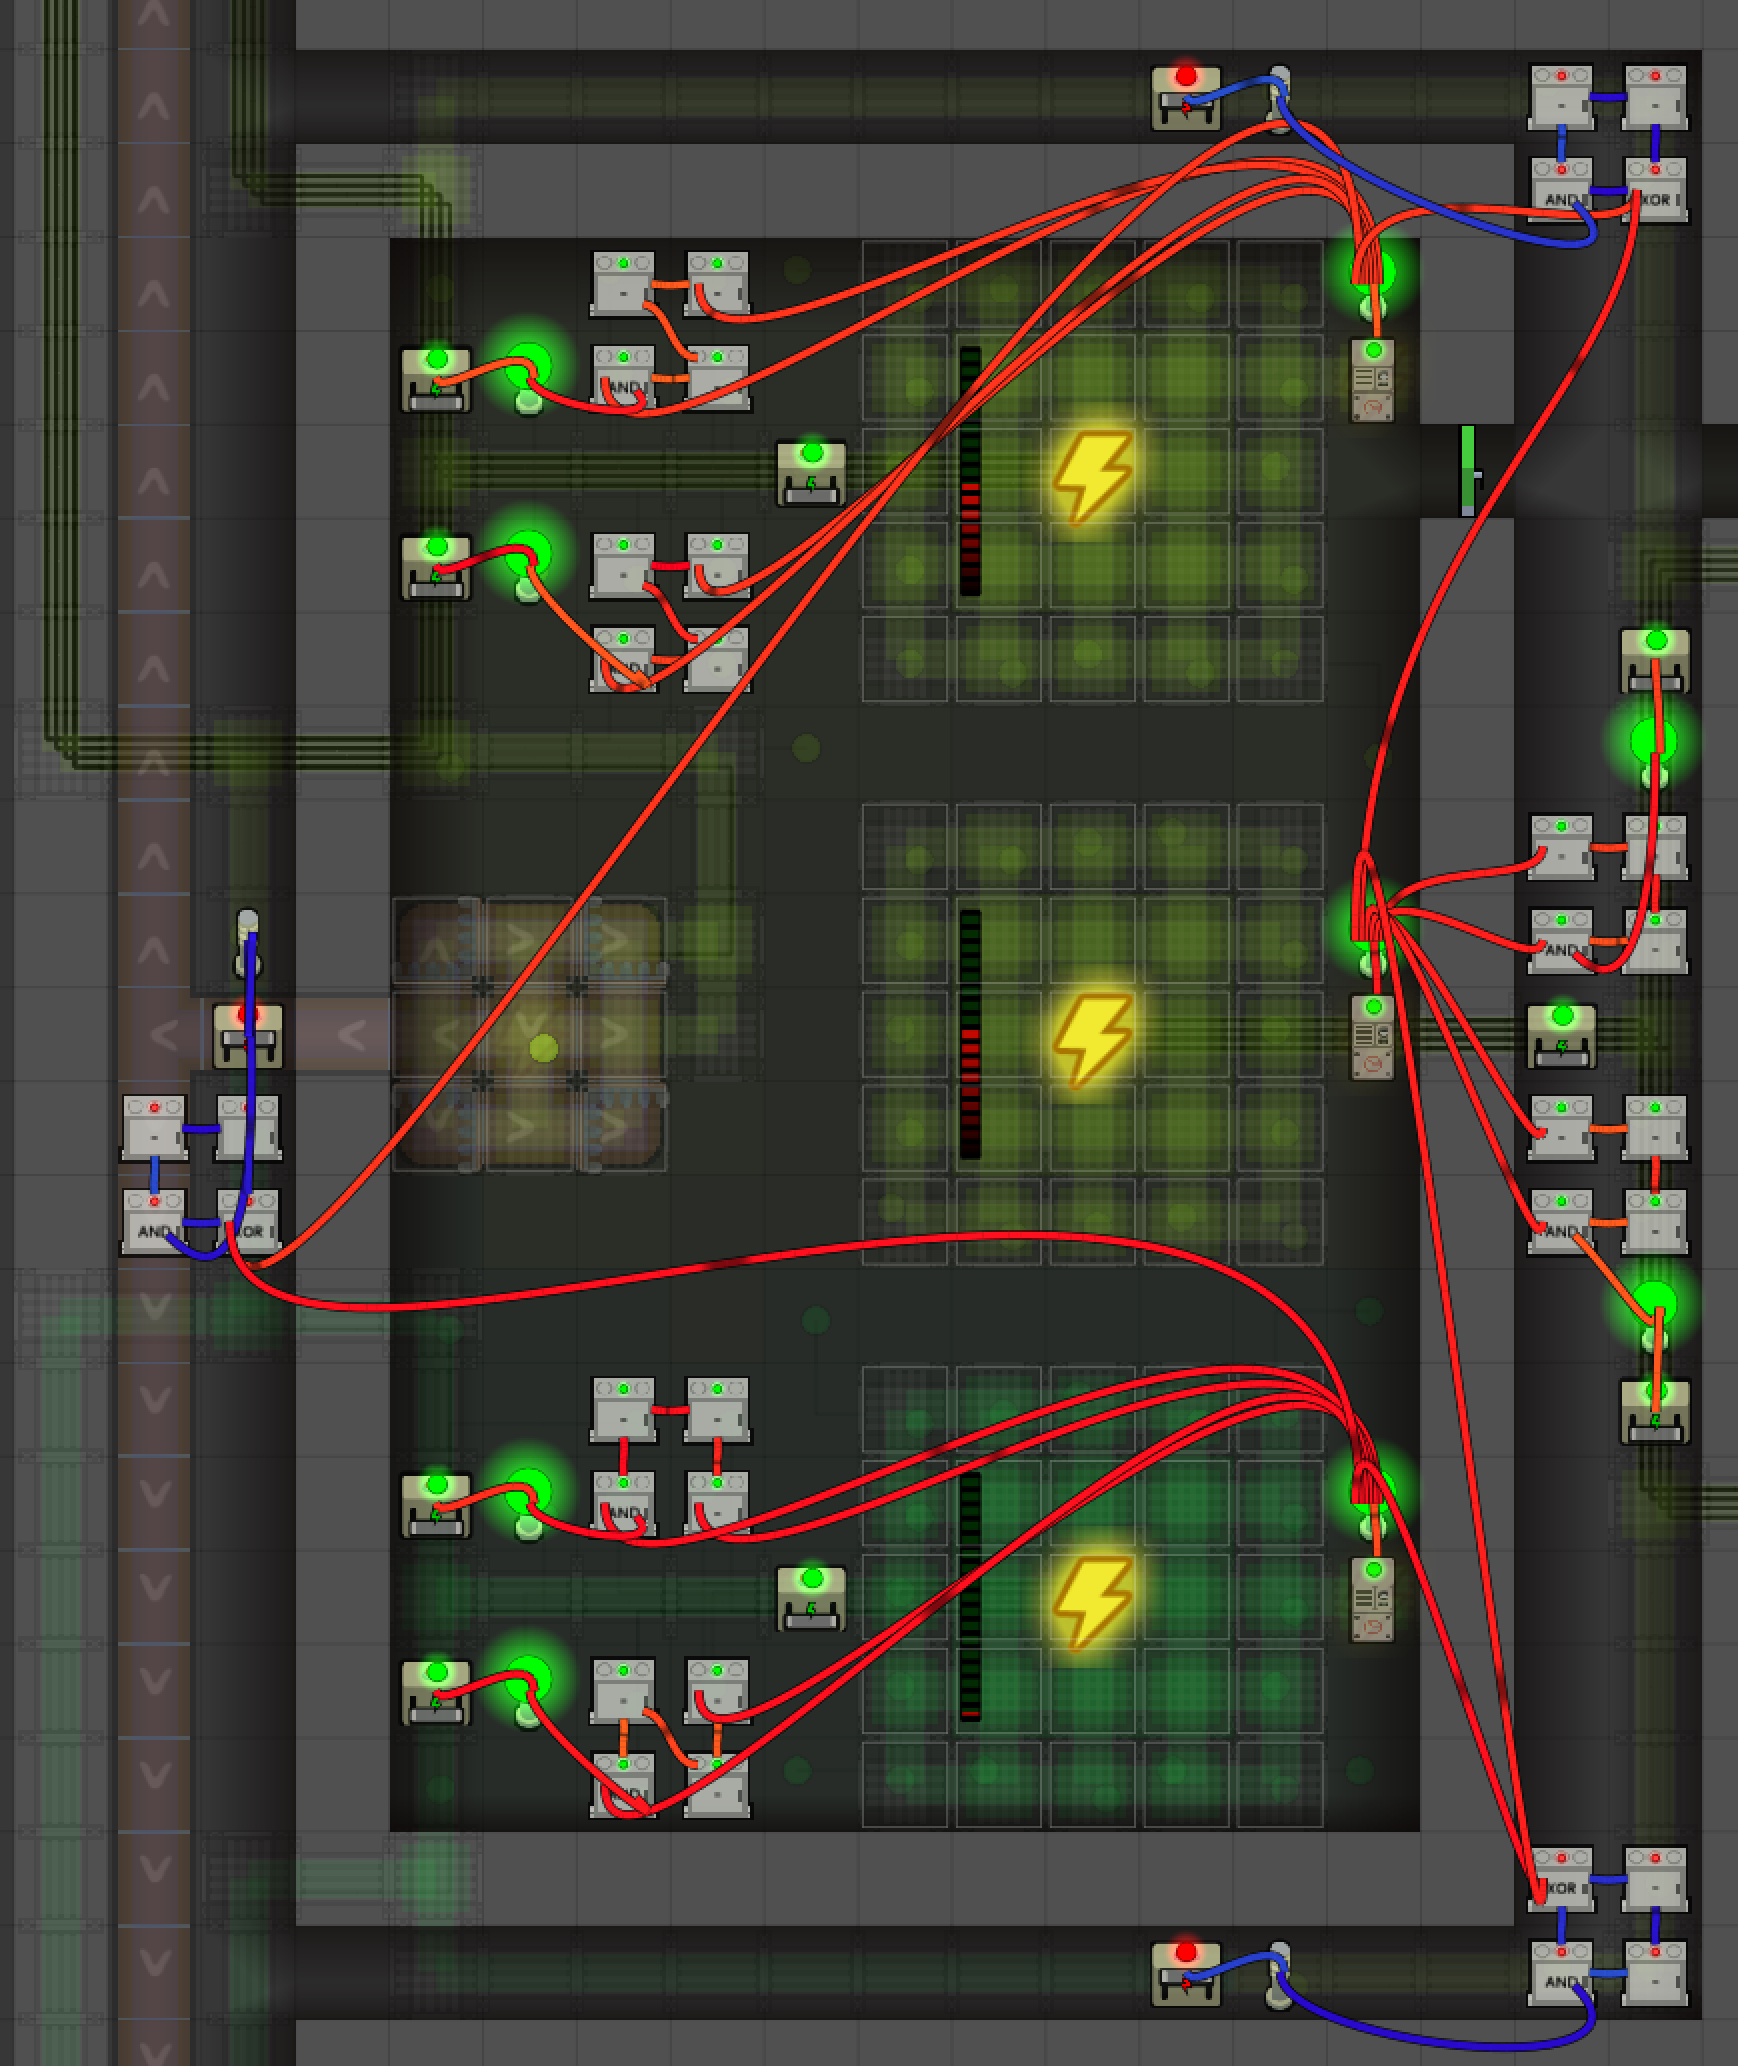 intermediate logic circuits prison architect wiki fandom poweredin this setup, when a power generator fails, the other two generators will each take over one network from the failed generator